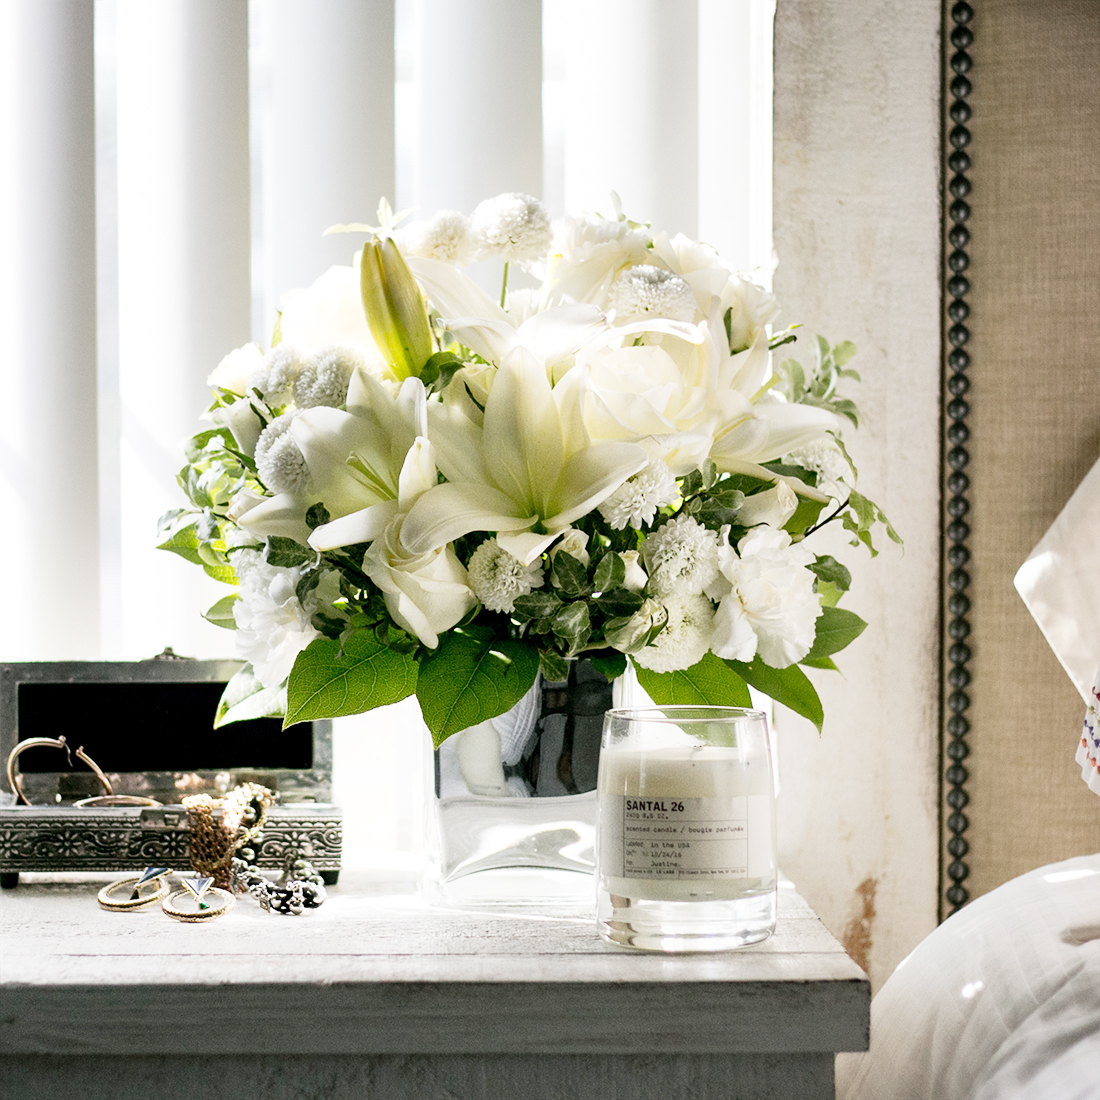 White lilies and white mums surrounded by greenery in a clear cube vase